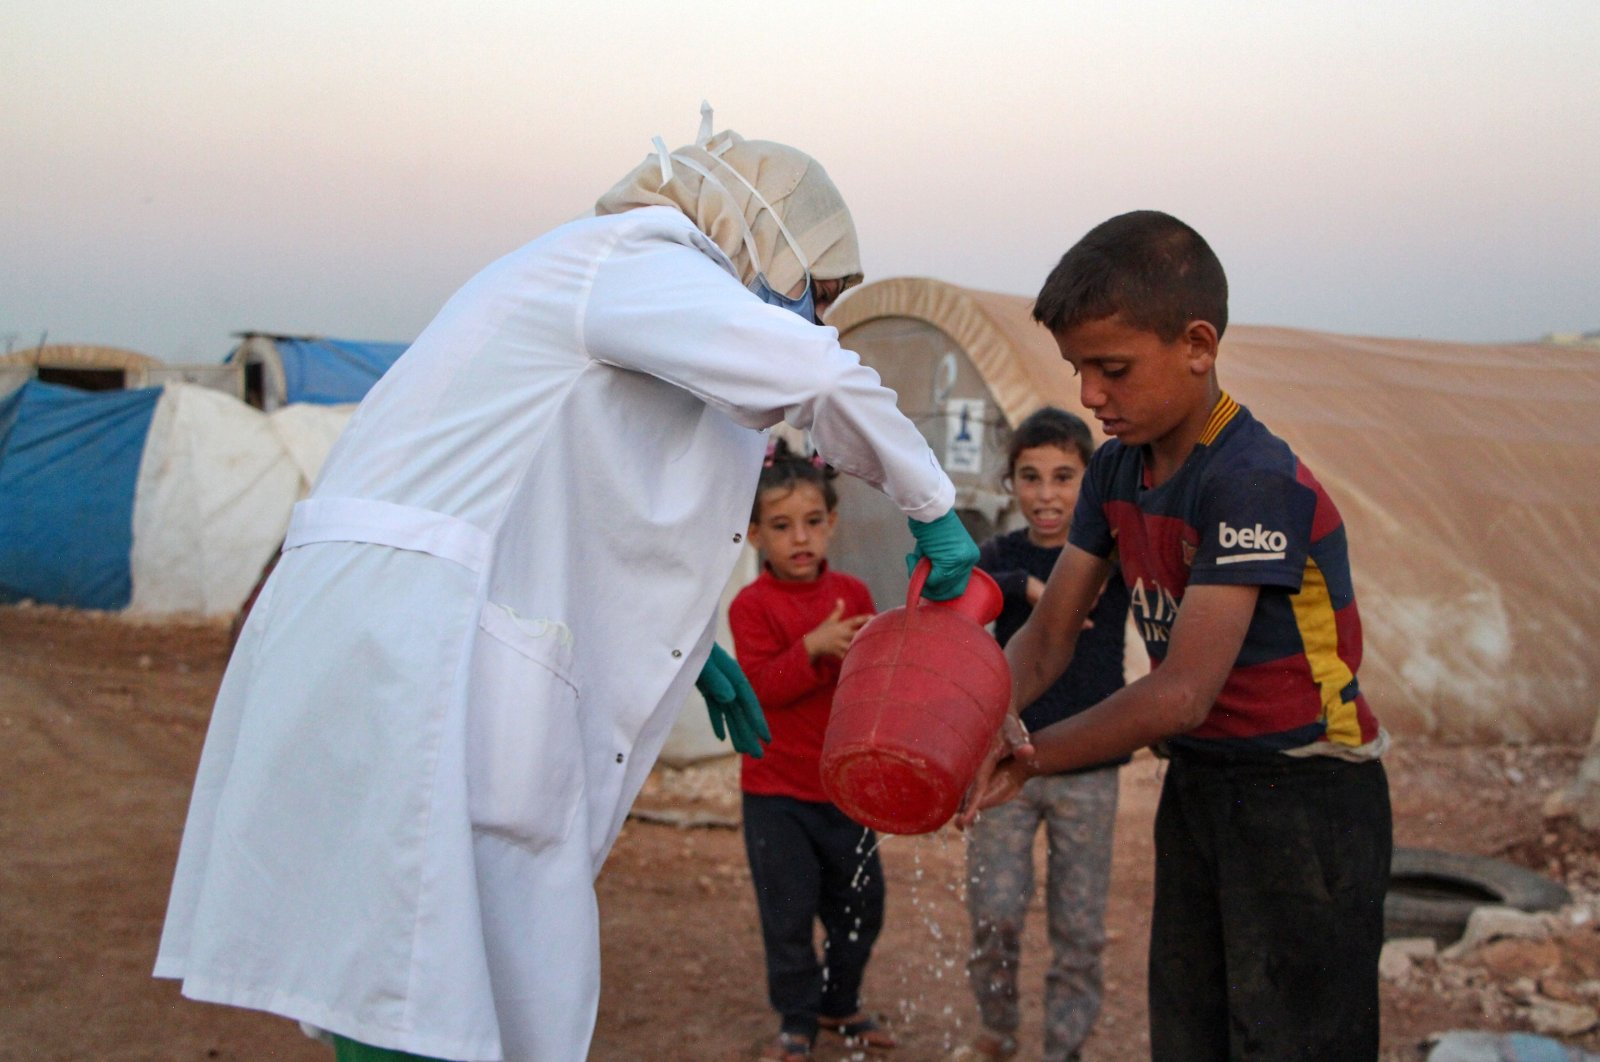 A Syrian doctor, under her own initiative, instructs children how to properly wash their hands during the coronavirus pandemic, east of the Turkish-Syrian border in the Janid displacement camp near the town of Dana, northwestern Idlib province, Syria, July 26, 2020. (AFP Photo)